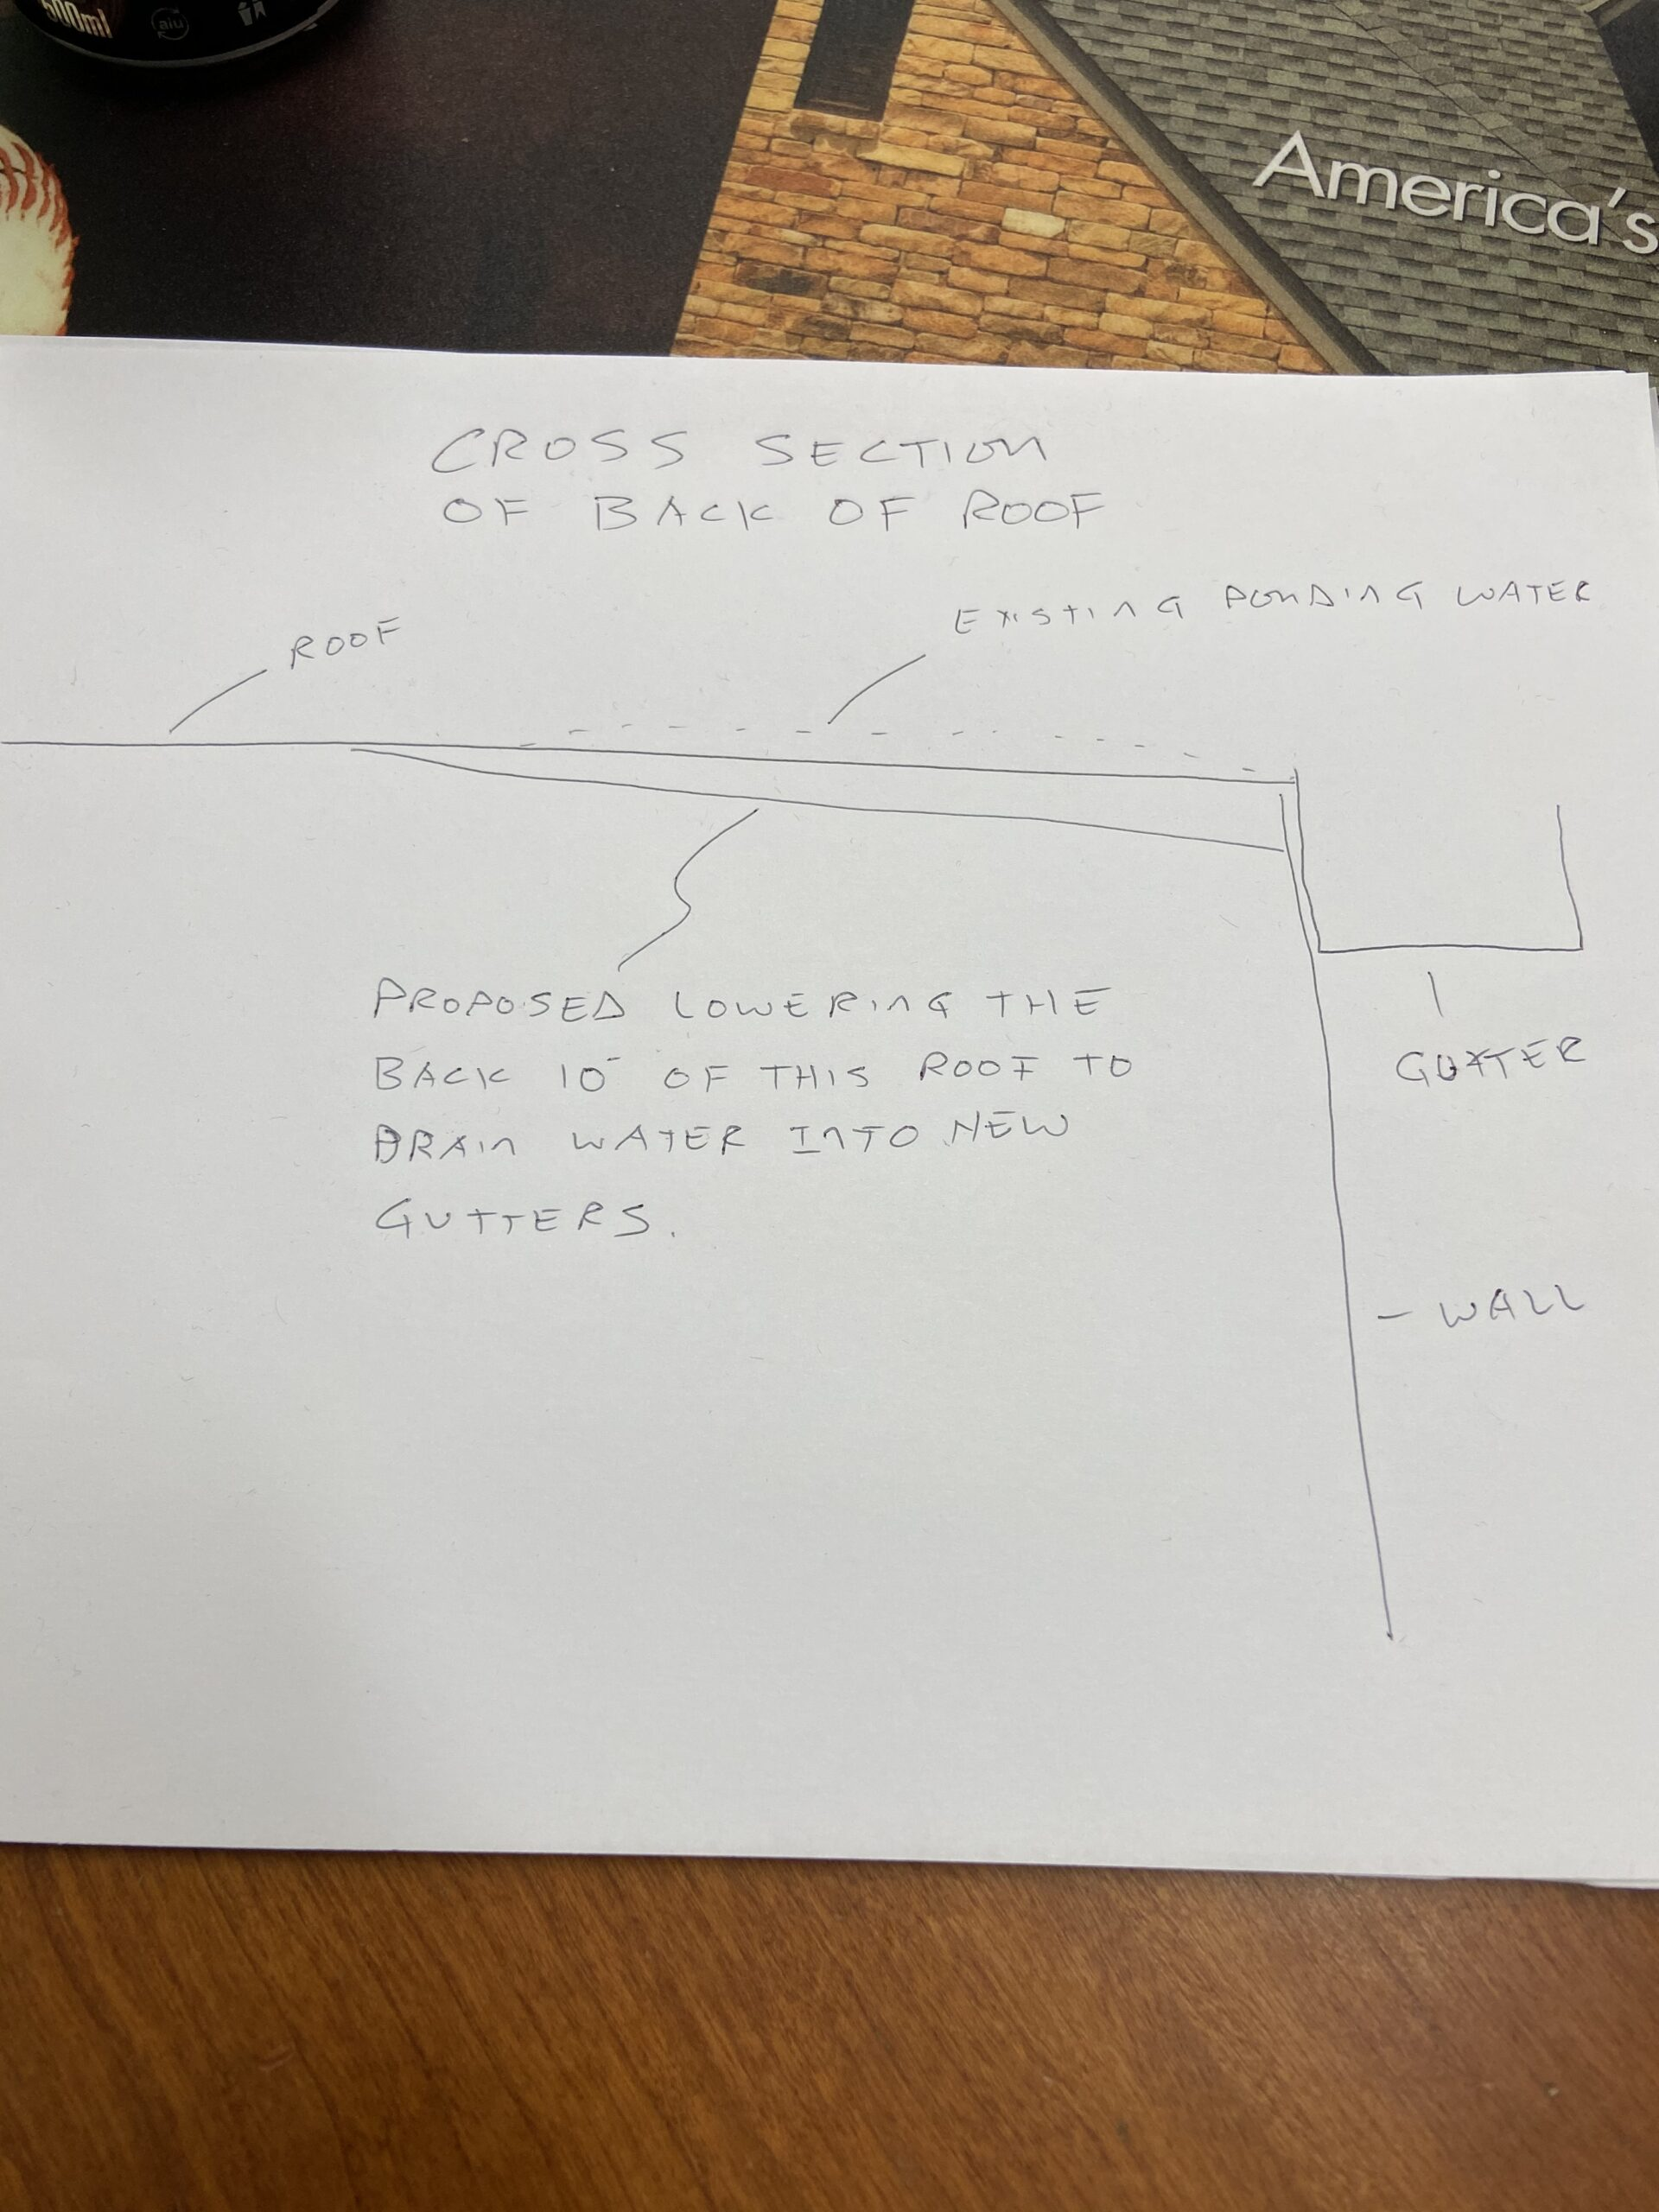 This is a drawing of a proposal to change the grade of the back of the roof to drain water